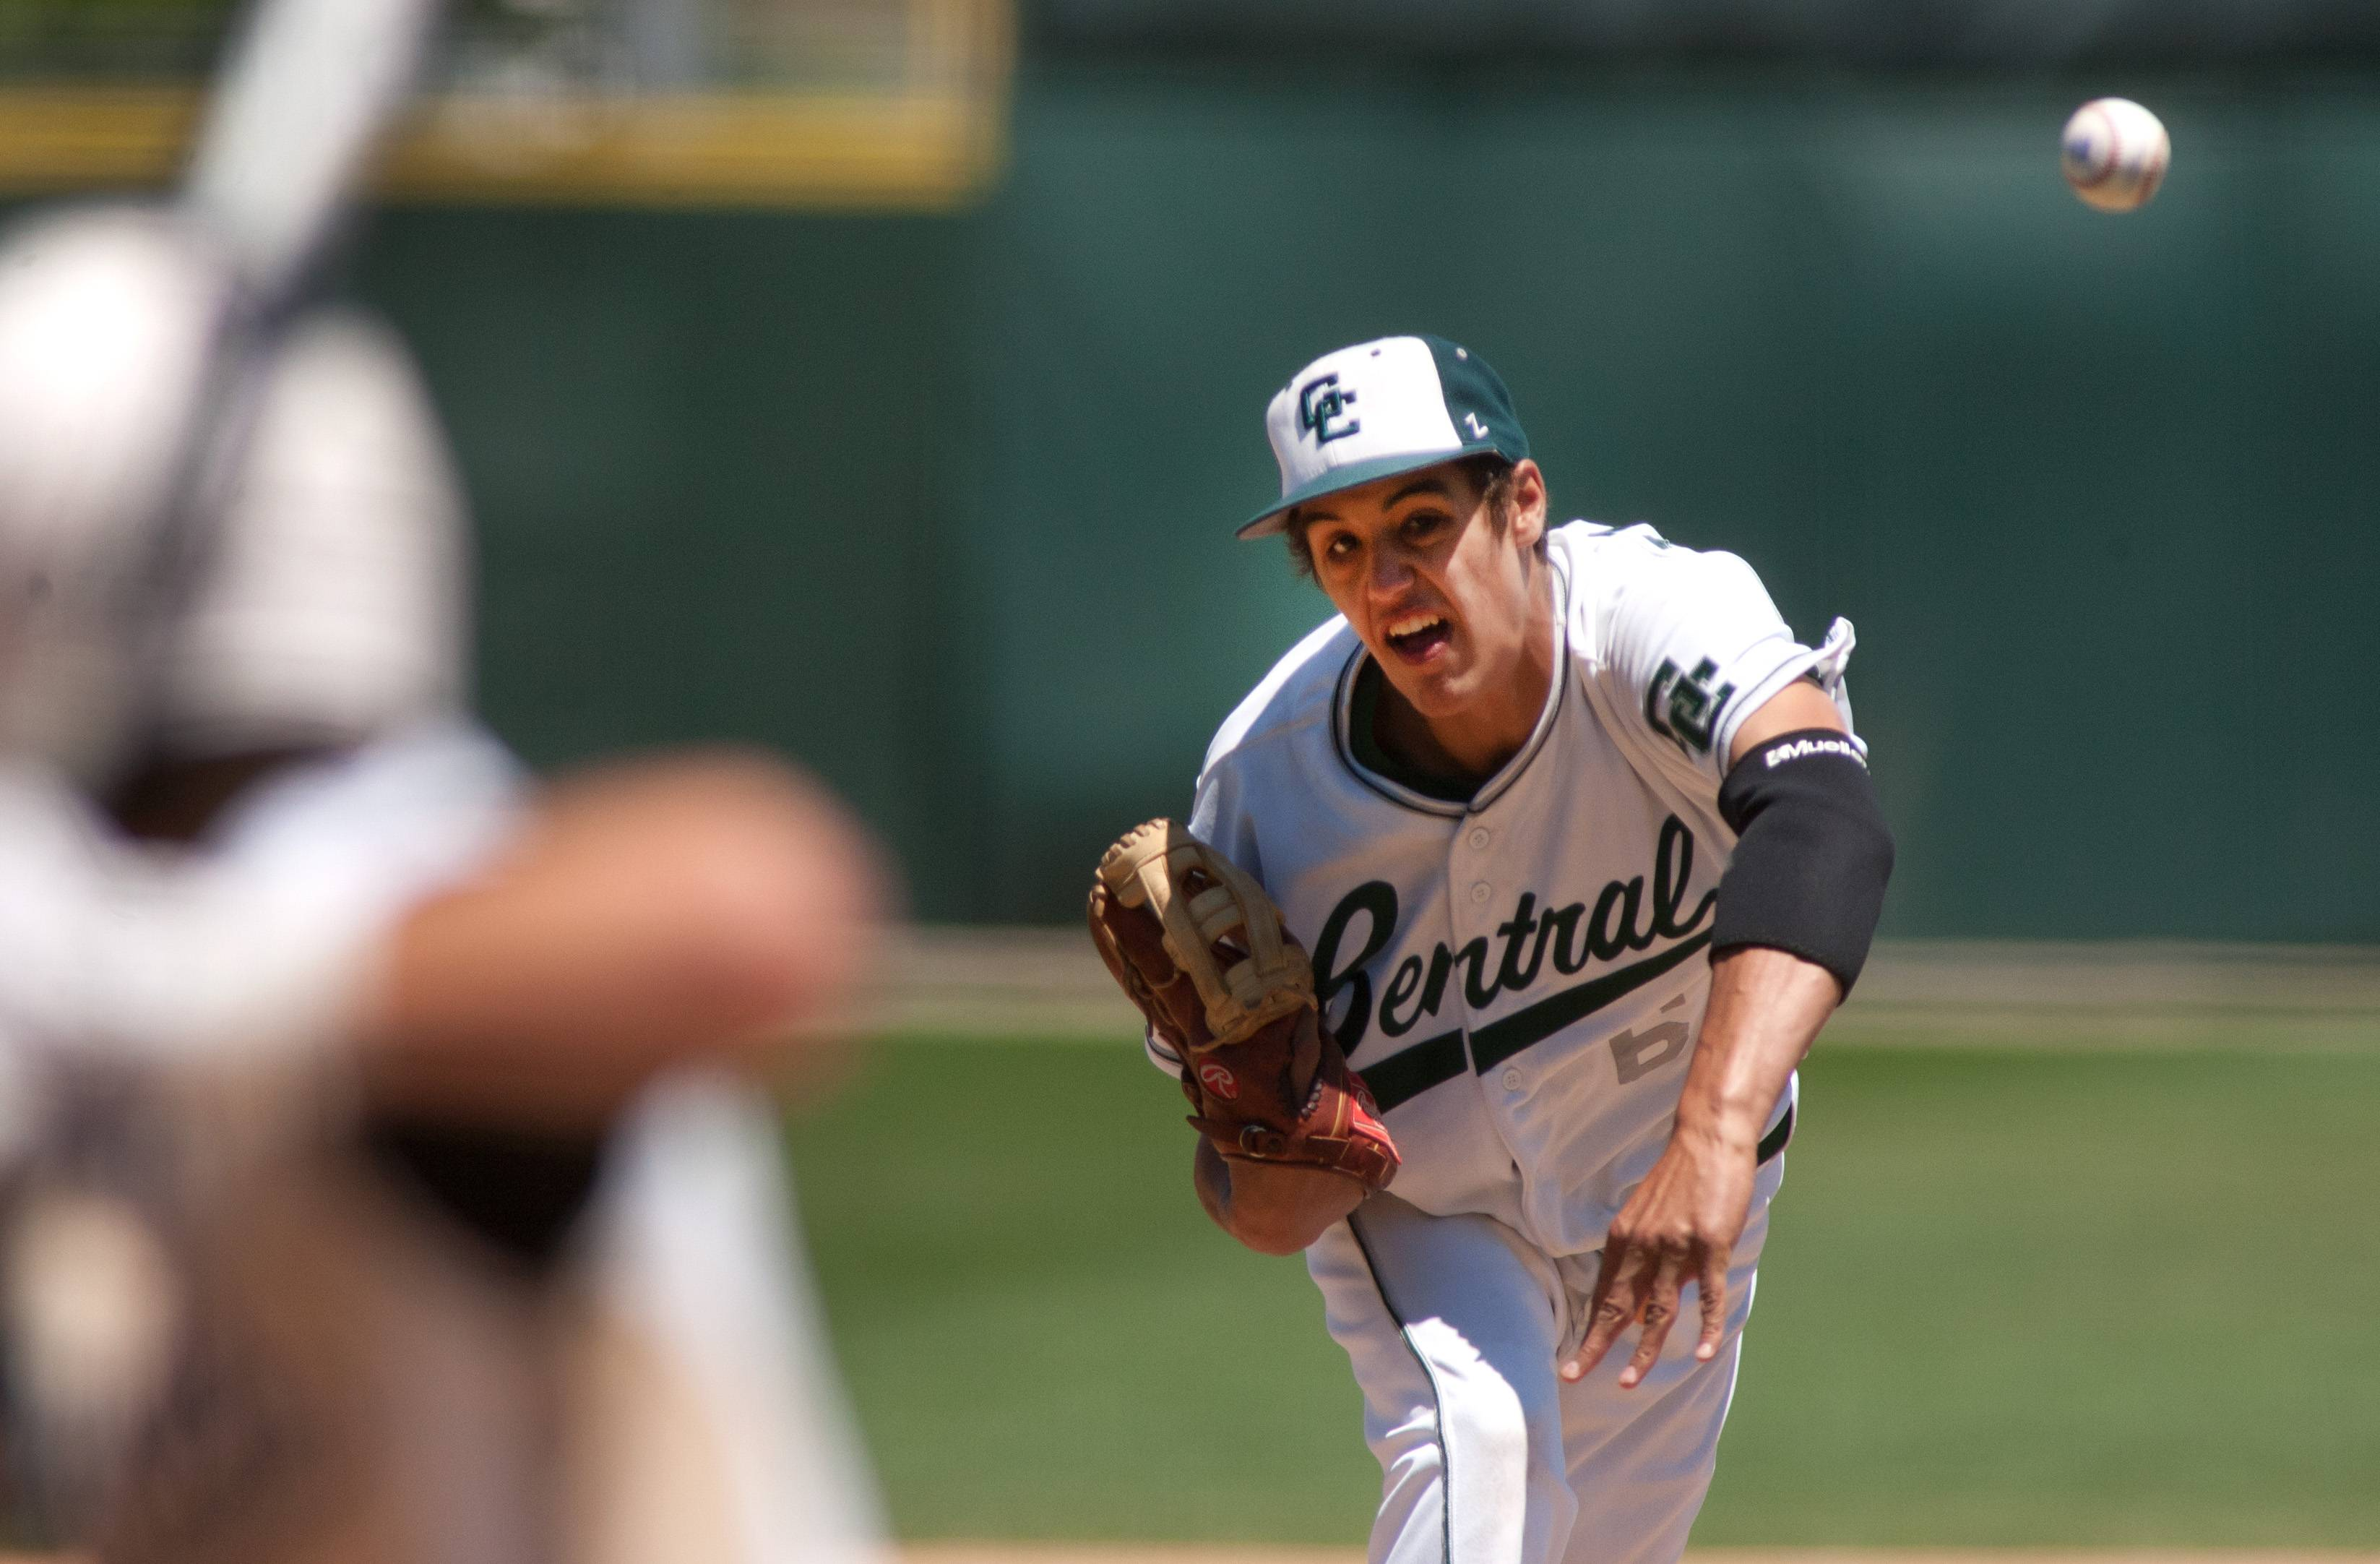 Grayslake Central pitcher David Llorens delivers against Springfield Sacred Heart-Griffin during Class 3A baseball state semifinals at Silver Cross Field in Joliet.